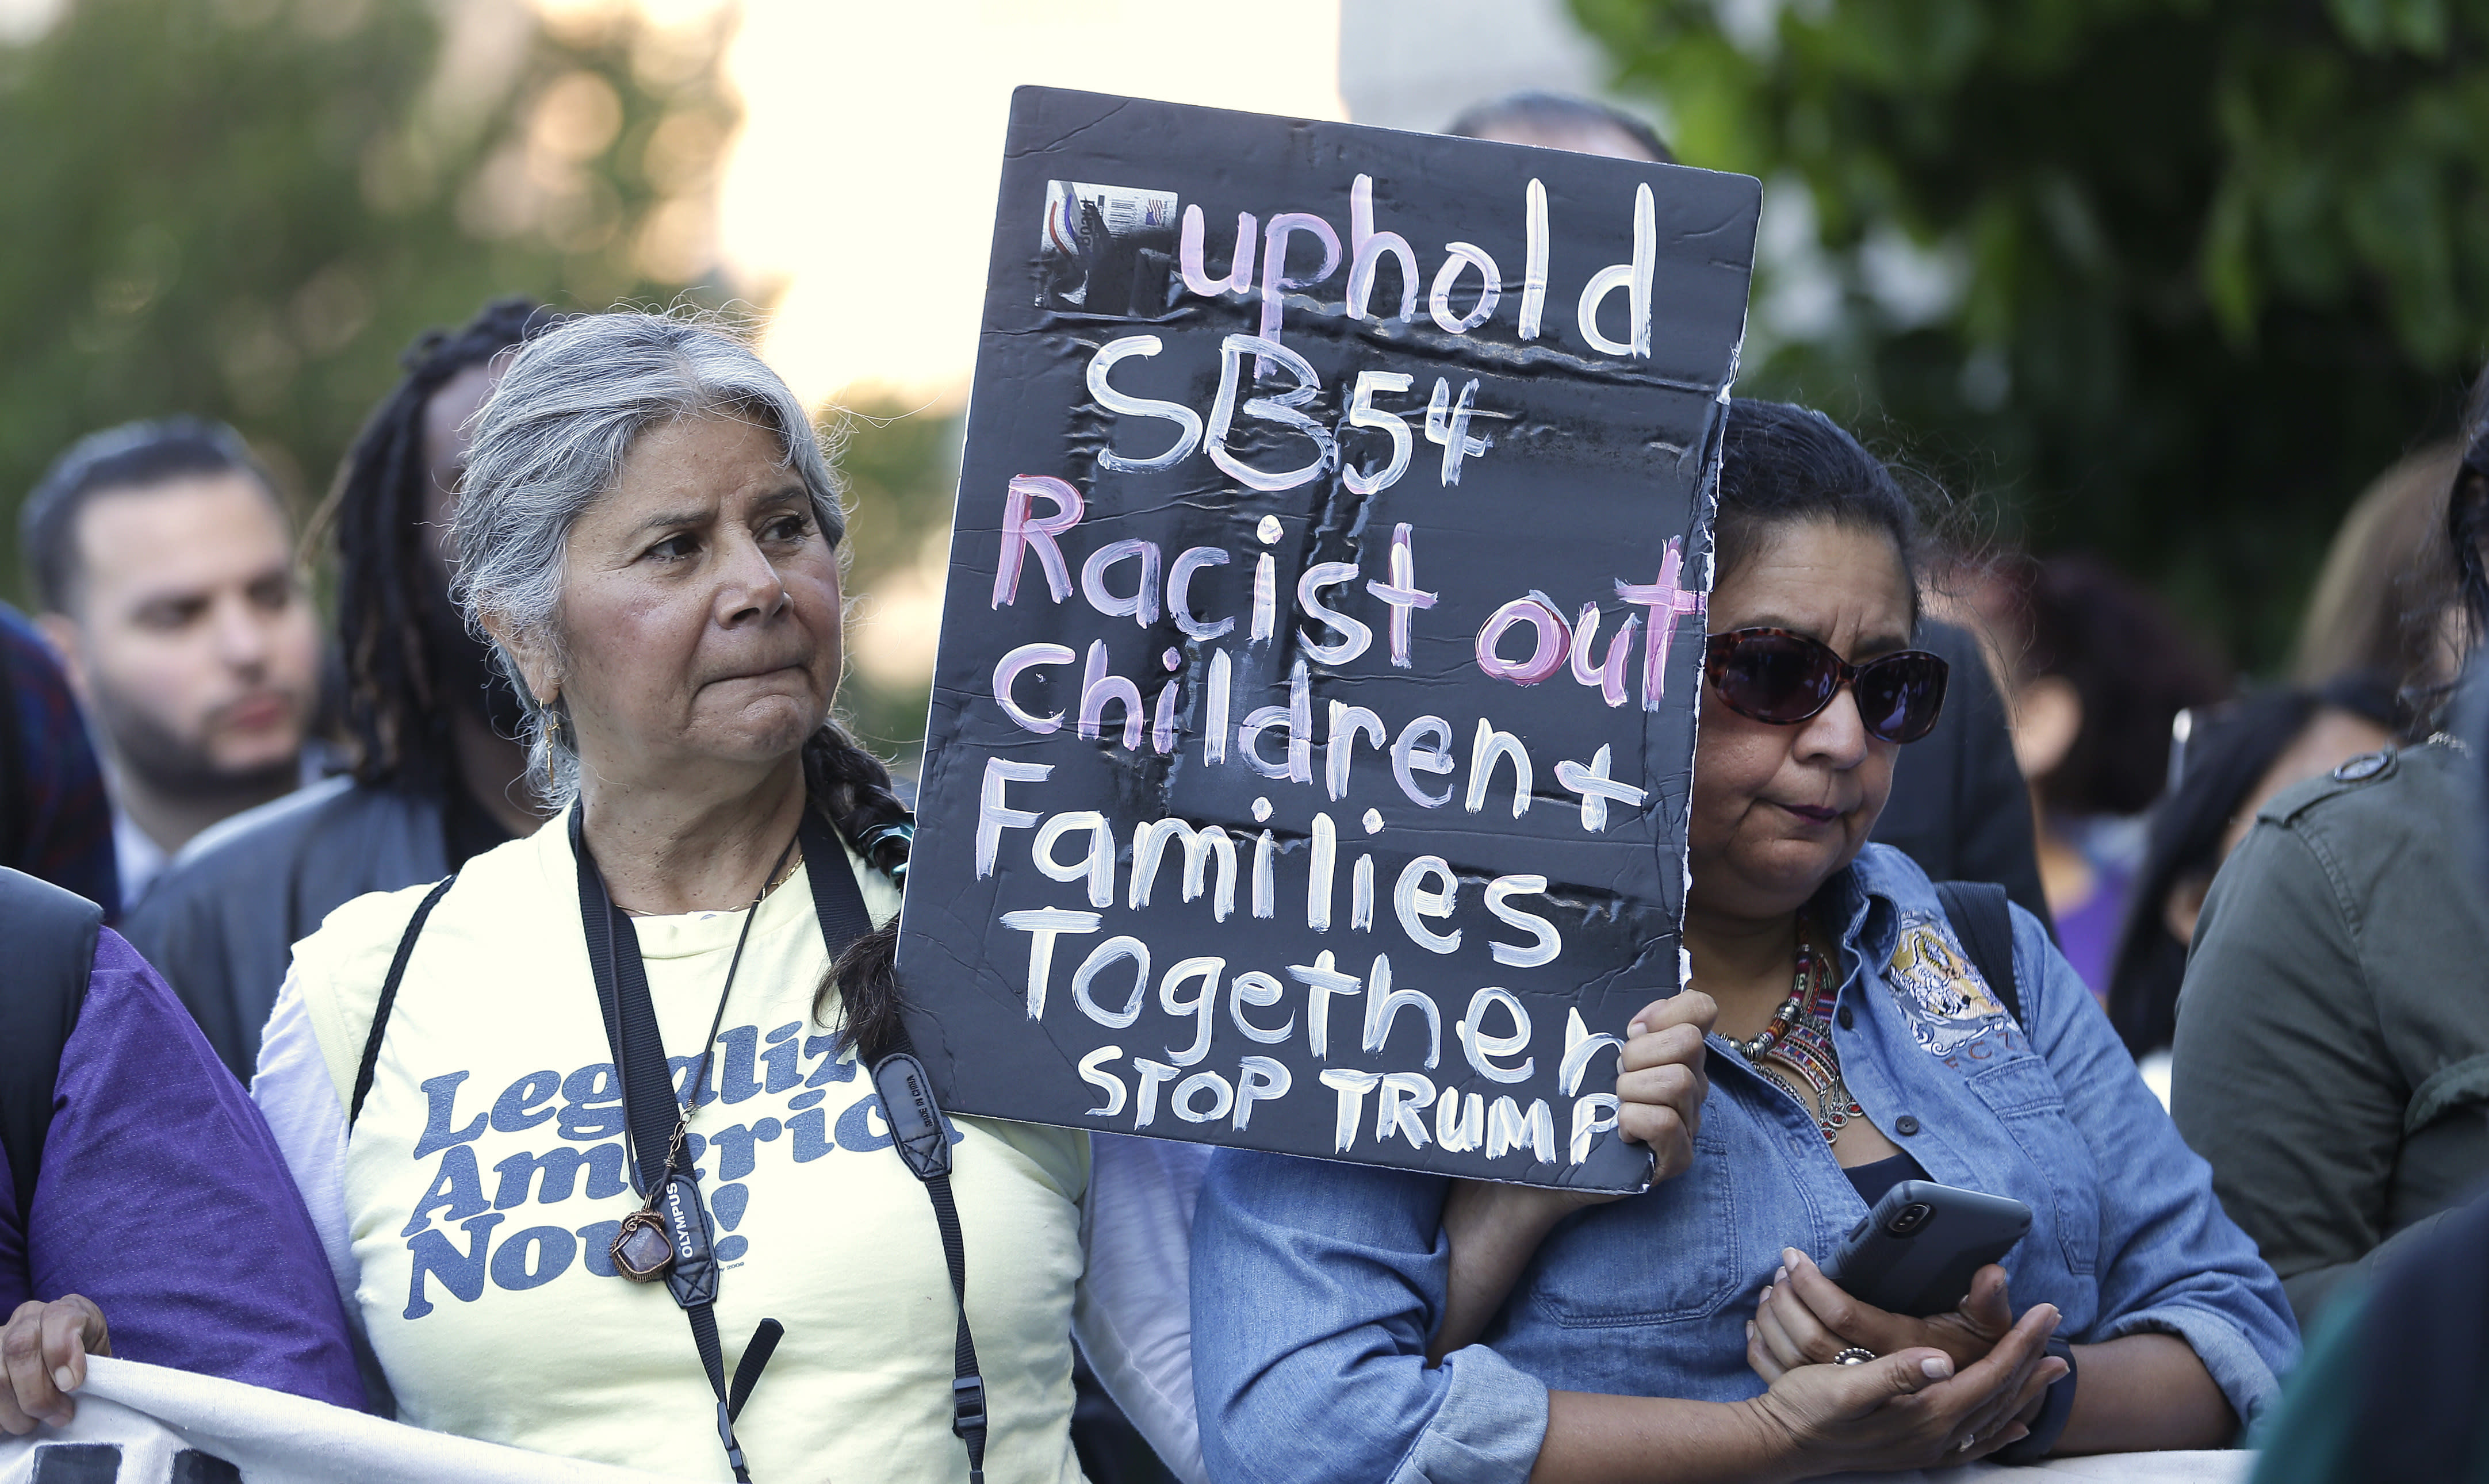 """<span class=""""s1"""">Protesters gathered Wednesday in Sacramento, where a federal judge heard arguments over the Justice Department's request to block three California laws that extend protections to people in the country illegally. (Photo: Rich Pedroncelli/AP)</span>"""